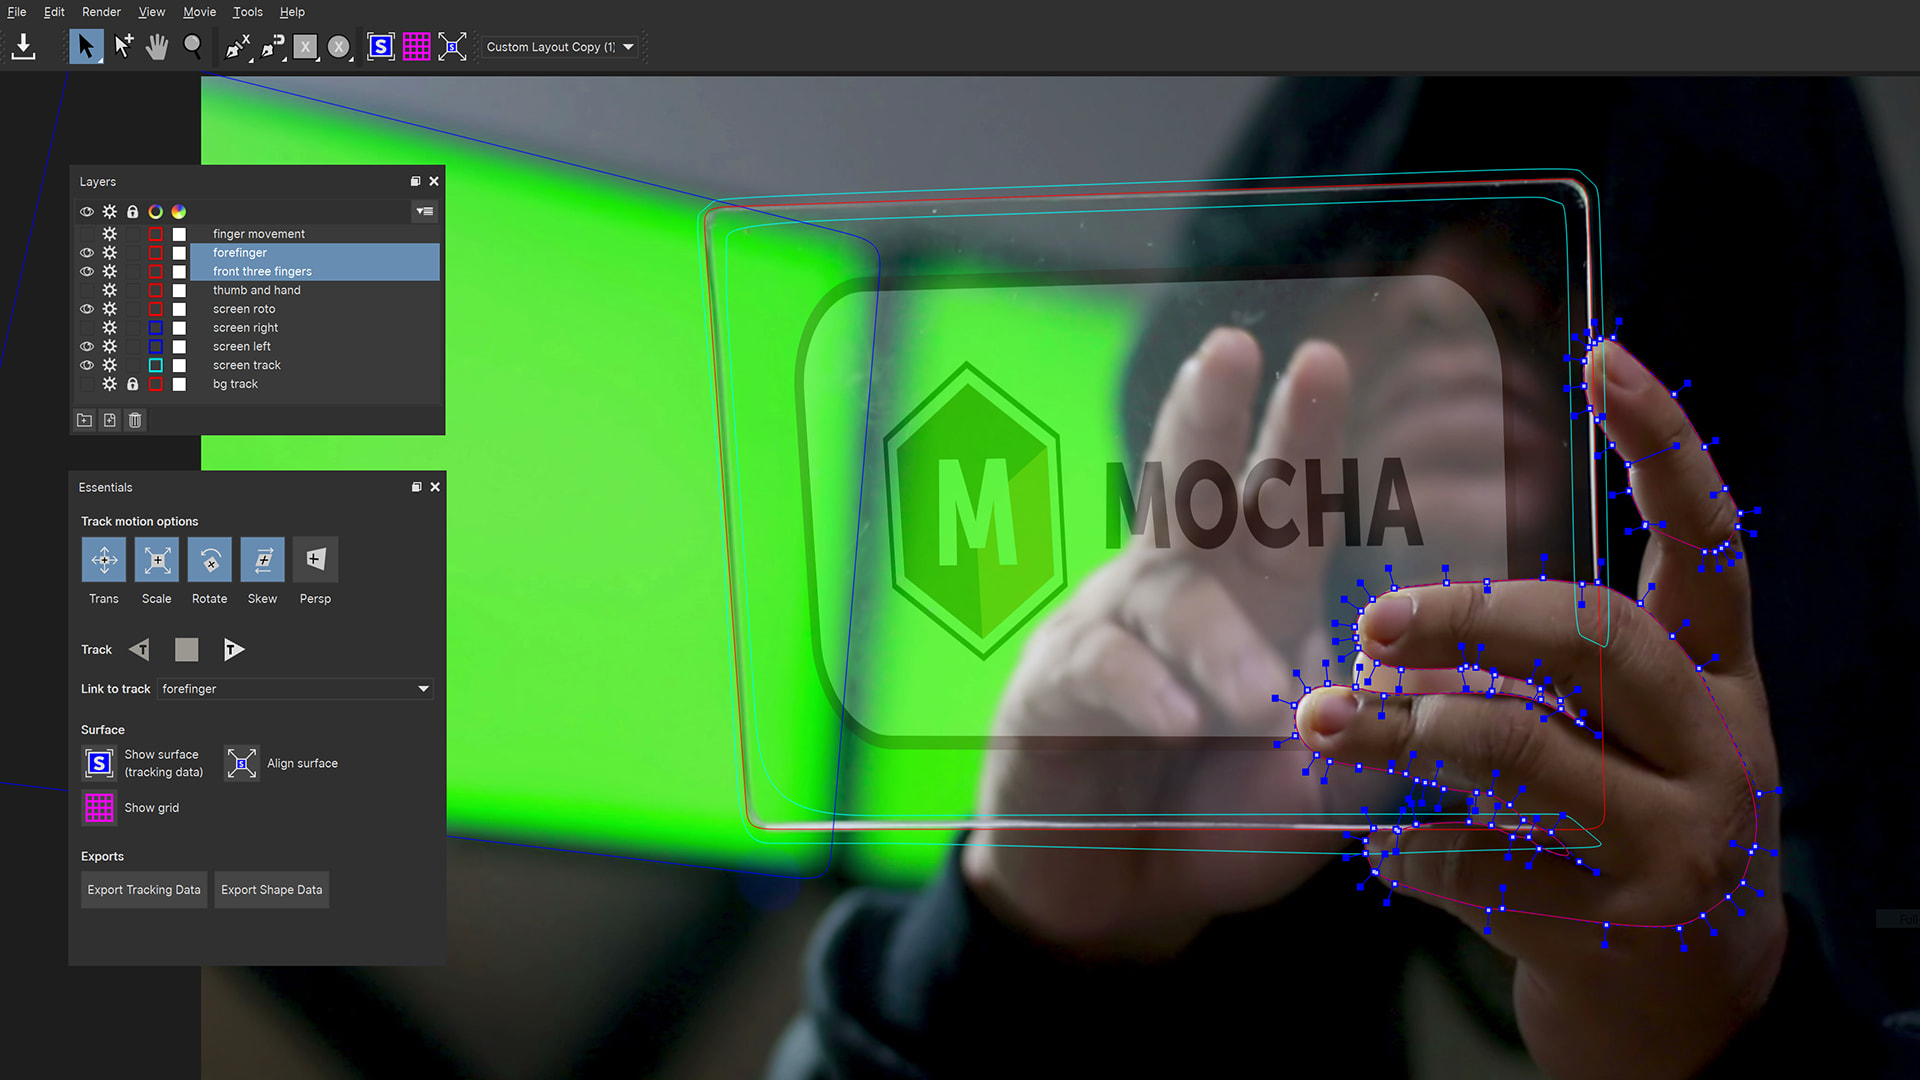 where to purchase mocha Pro v3.1 software